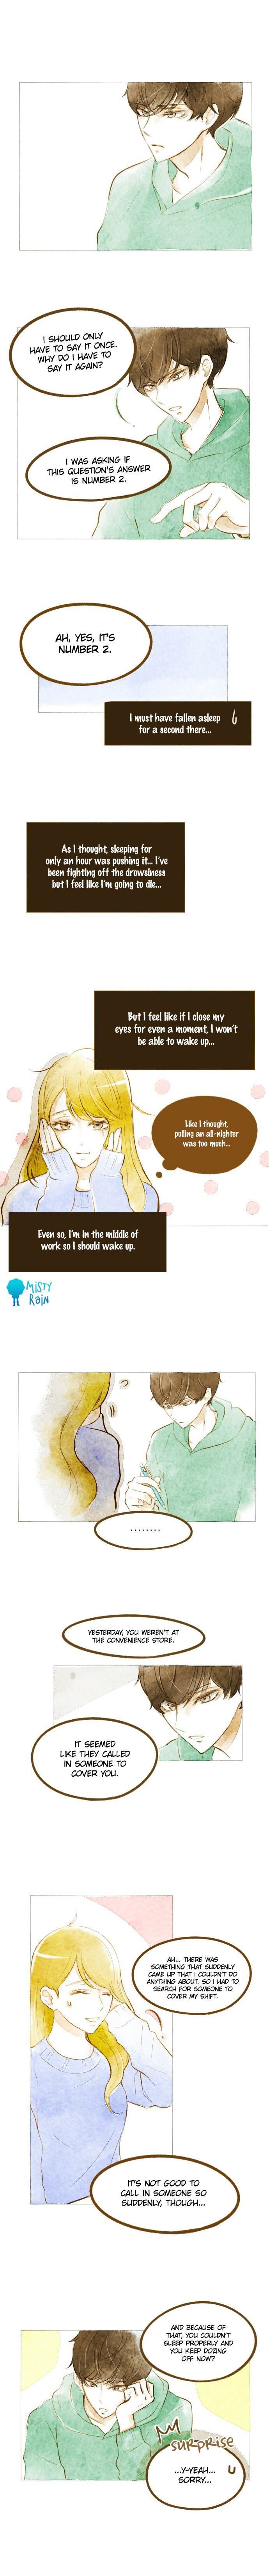 Real My Way 10 Page 2